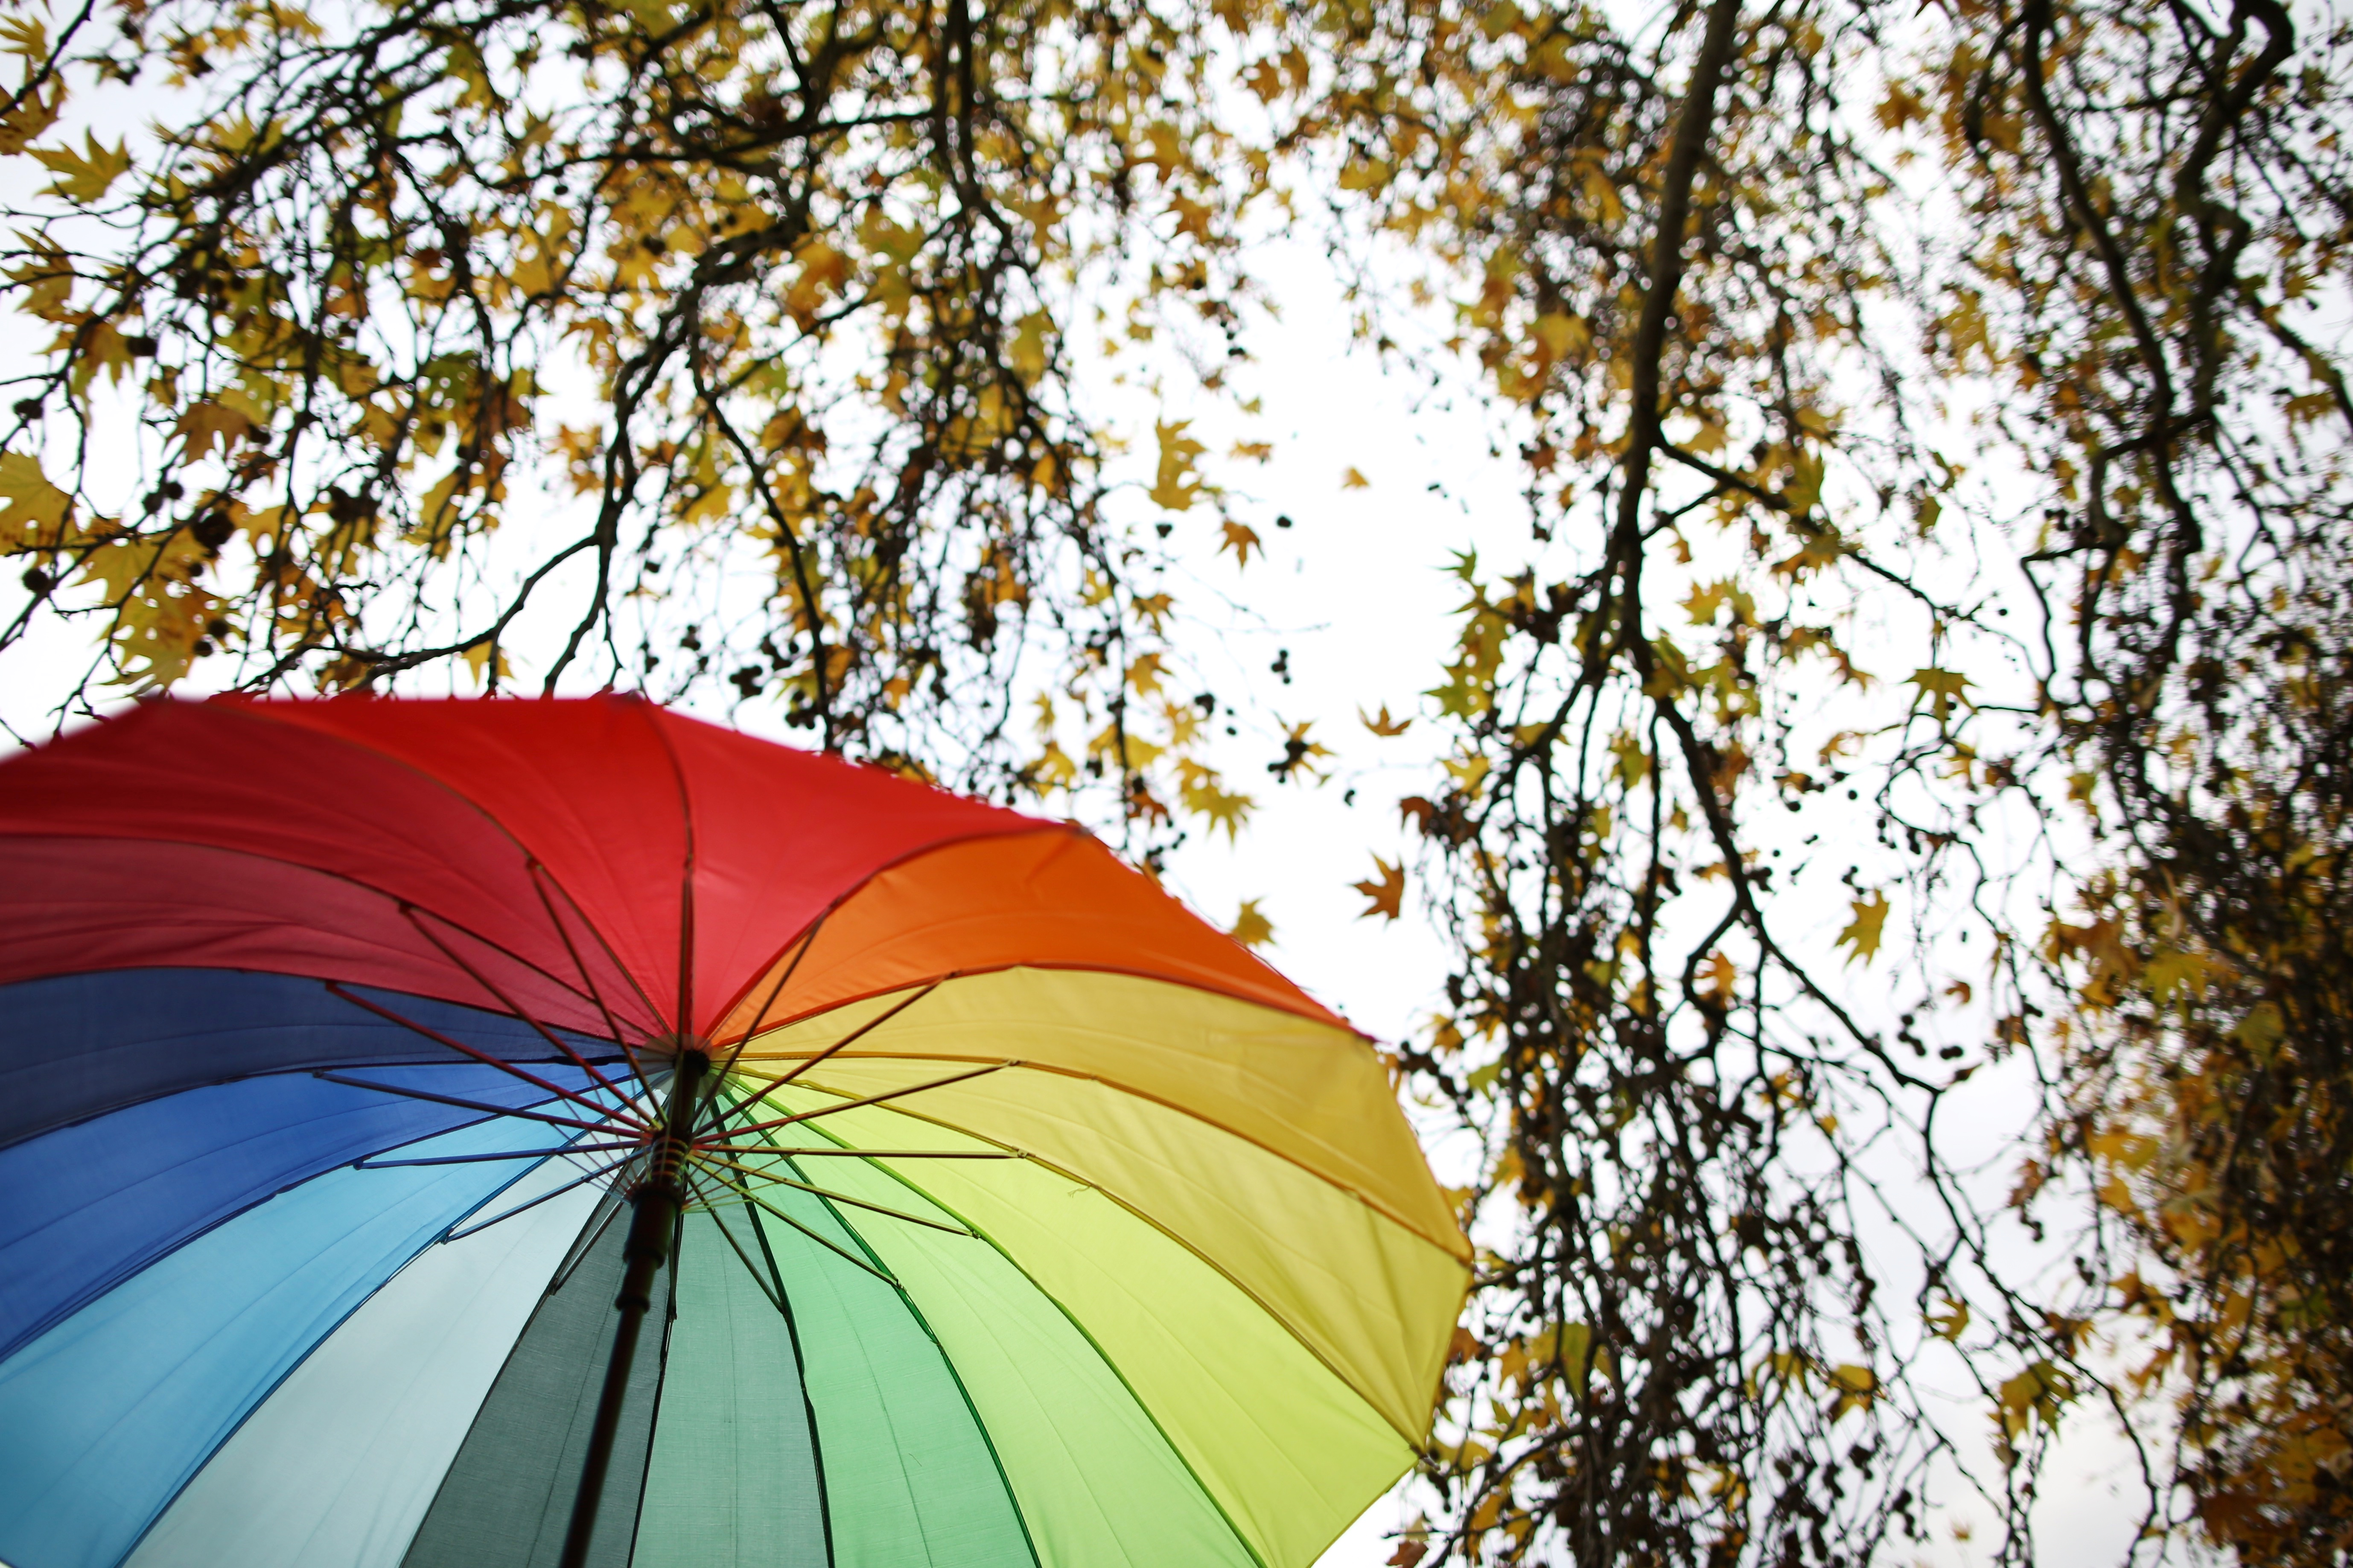 Colourful umbrella under trees